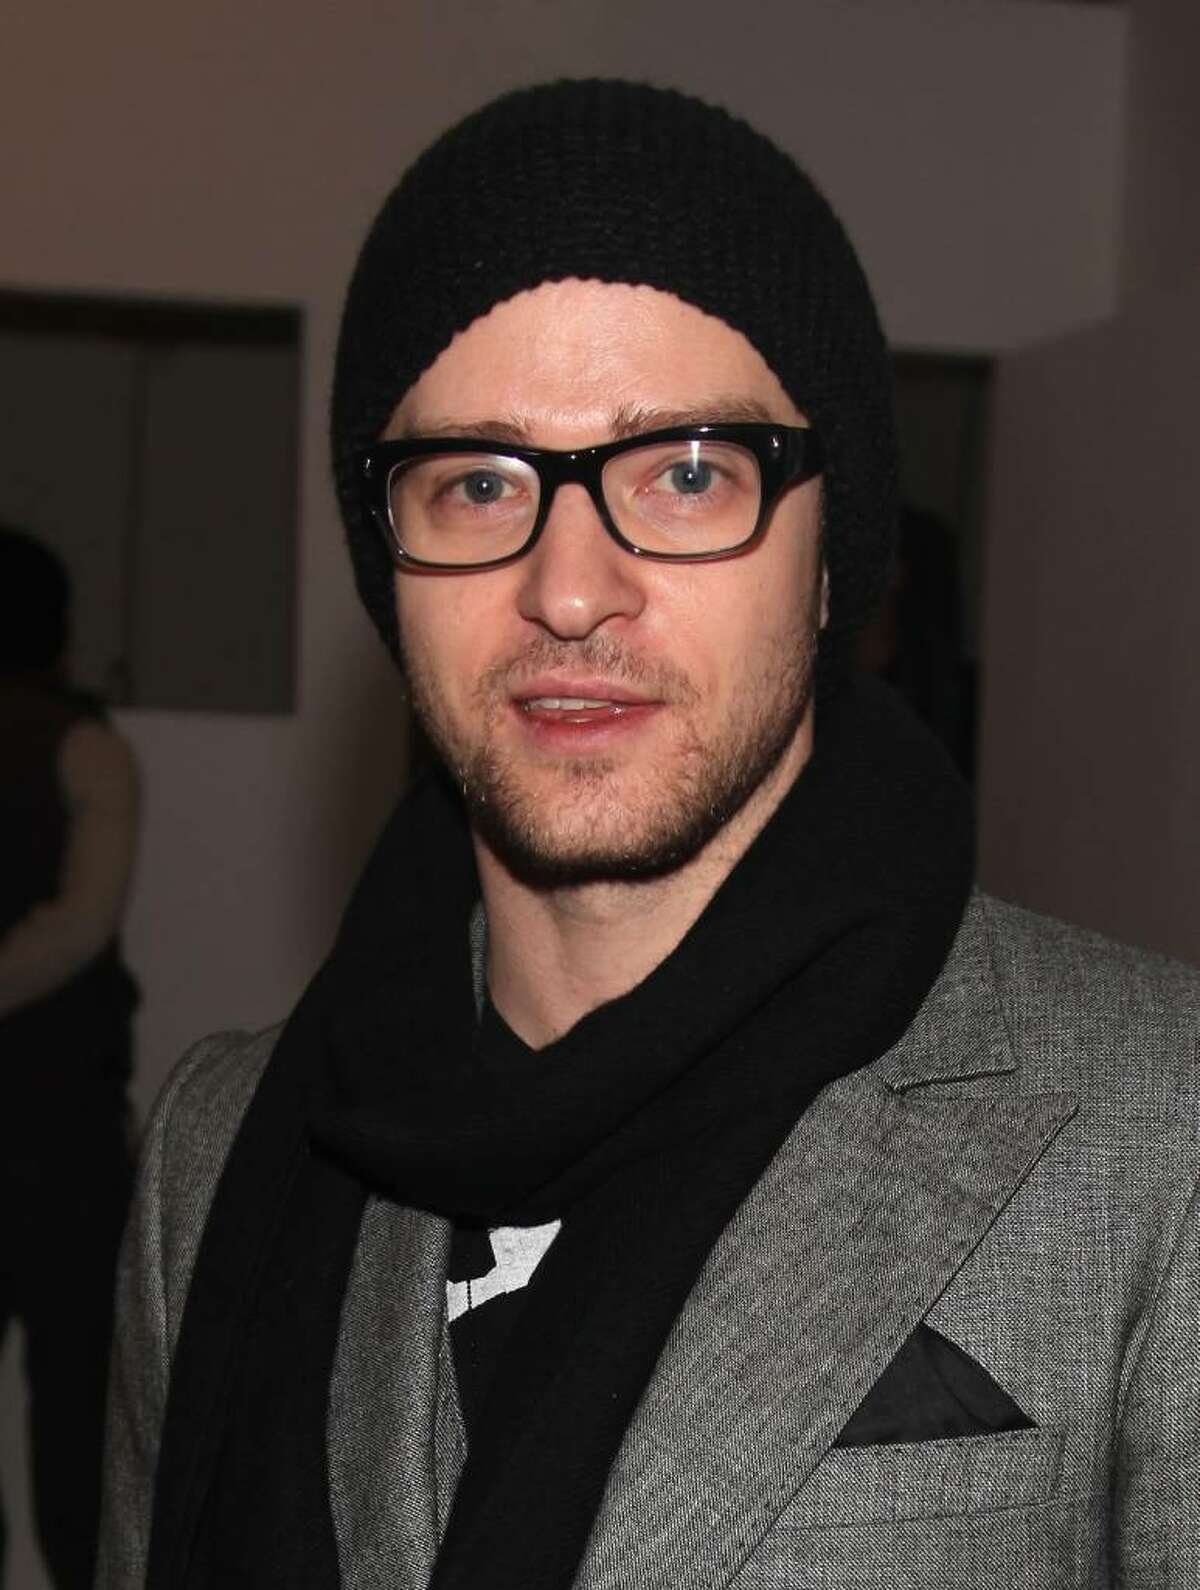 NEW YORK - FEBRUARY 18: Justin Timberlake attends the Paris68 Fall 2010 Fashion Show during Mercedes-Benz Fashion Week at Milk Studios on February 18, 2010 in New York, New York. (Photo by Astrid Stawiarz/Getty Images) *** Local Caption *** Justin Timberlake